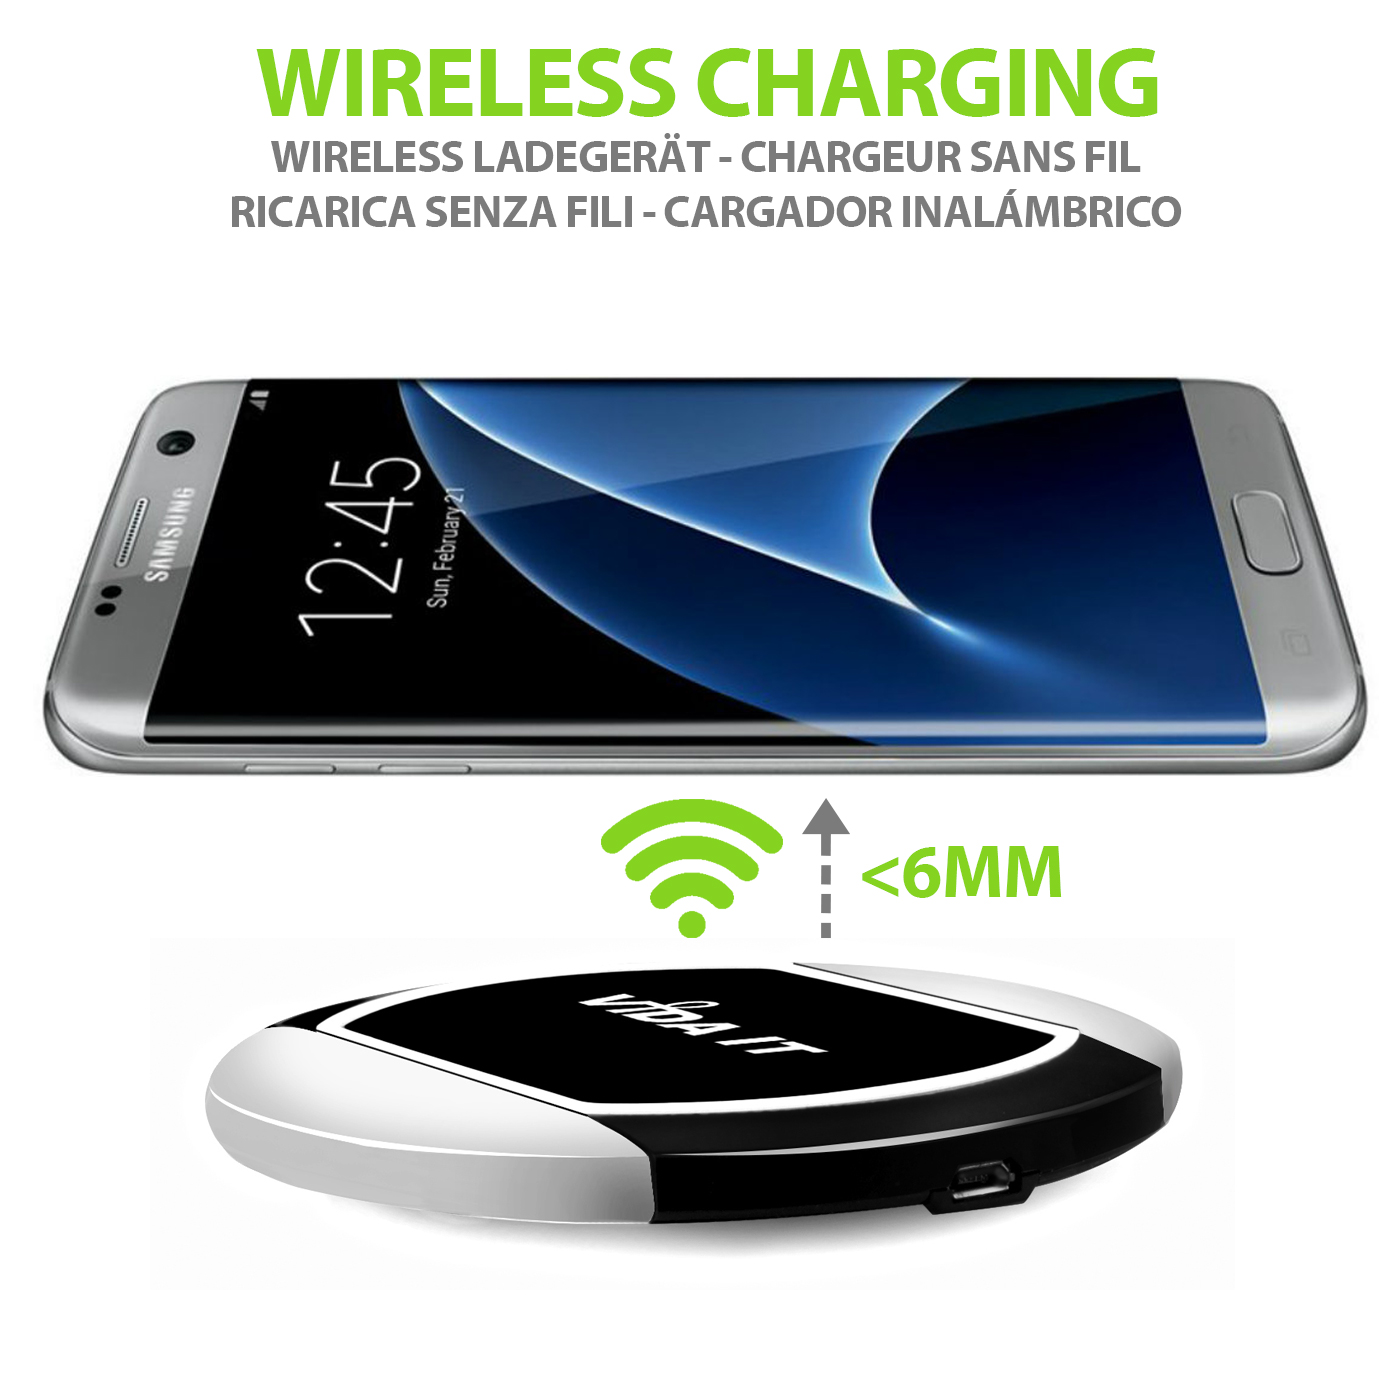 inductive qi wireless charging pad for nokia lumia 950. Black Bedroom Furniture Sets. Home Design Ideas